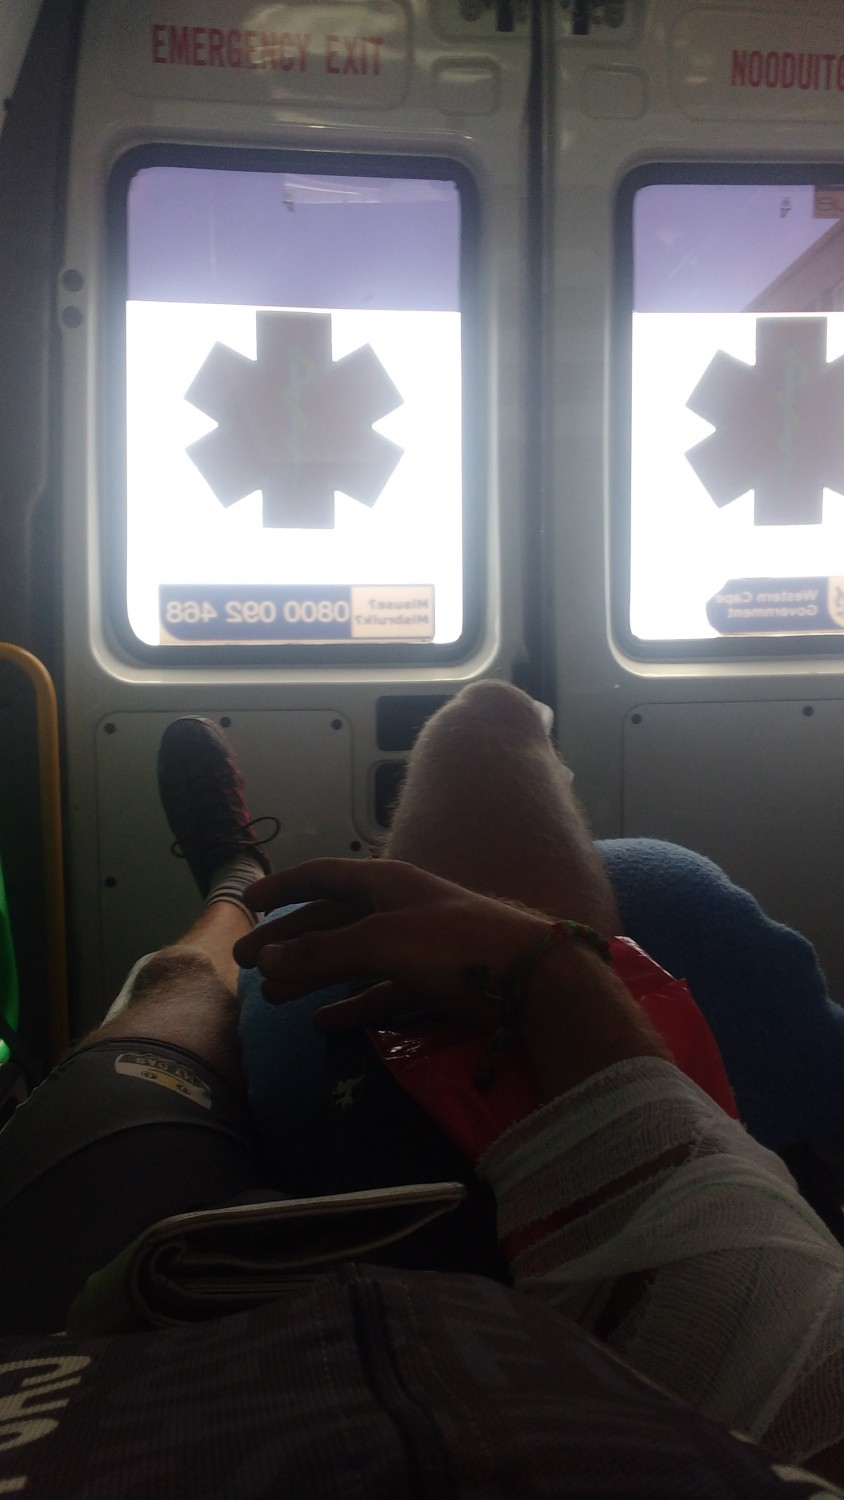 In the ambulance